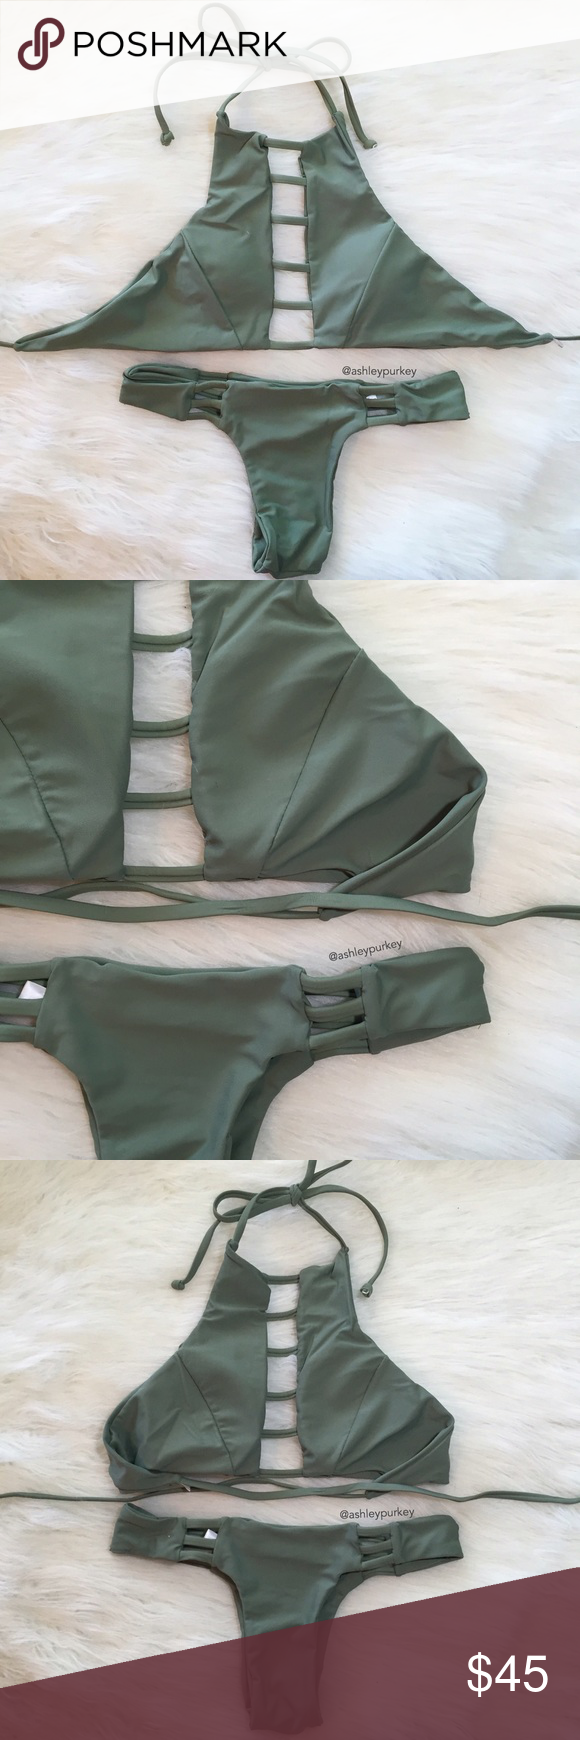 army green strappy ladder high neck bikini set •size: S or M   •features: top: has padded cups   •no trades  ❗️❗️ NOT from l*space (brand listed for visibility. real brand: B-Long Boutique)   ⚠️ if this item does not fit you CANNOT return it - poshmark policy l*space Swim Bikinis